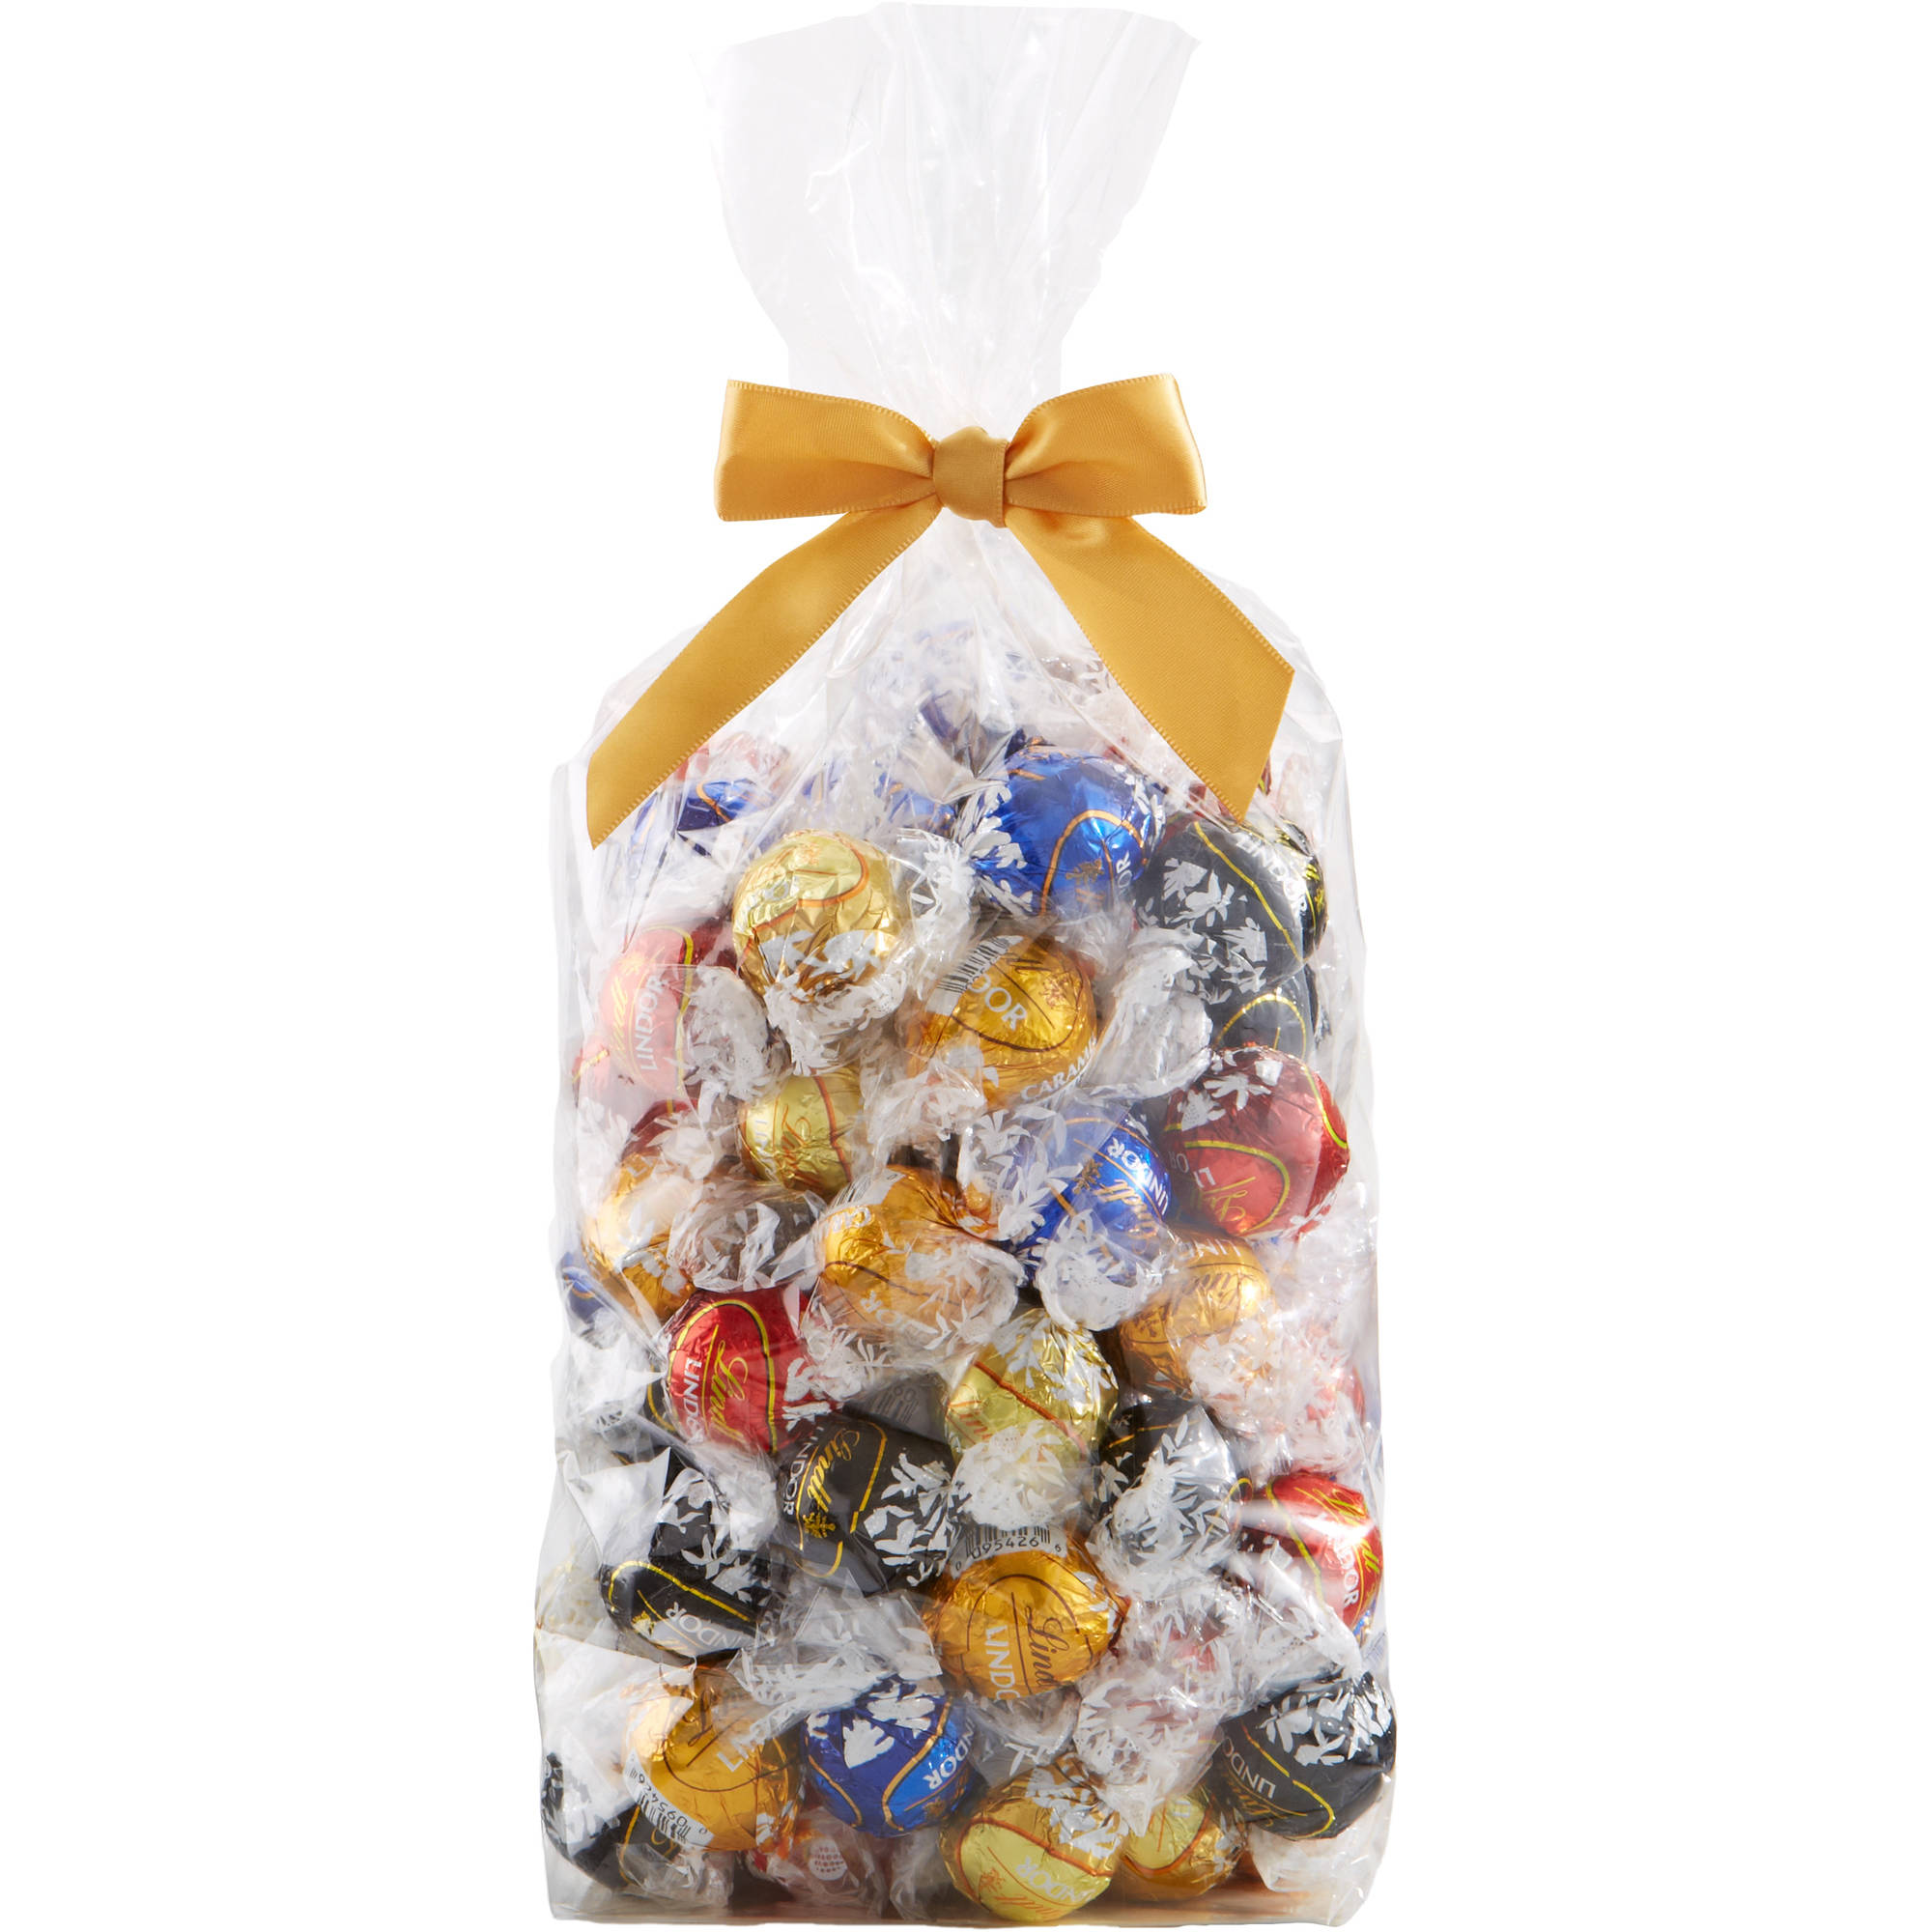 Lindt Lindor Assorted Chocolate Truffle Bag, 8.5 oz